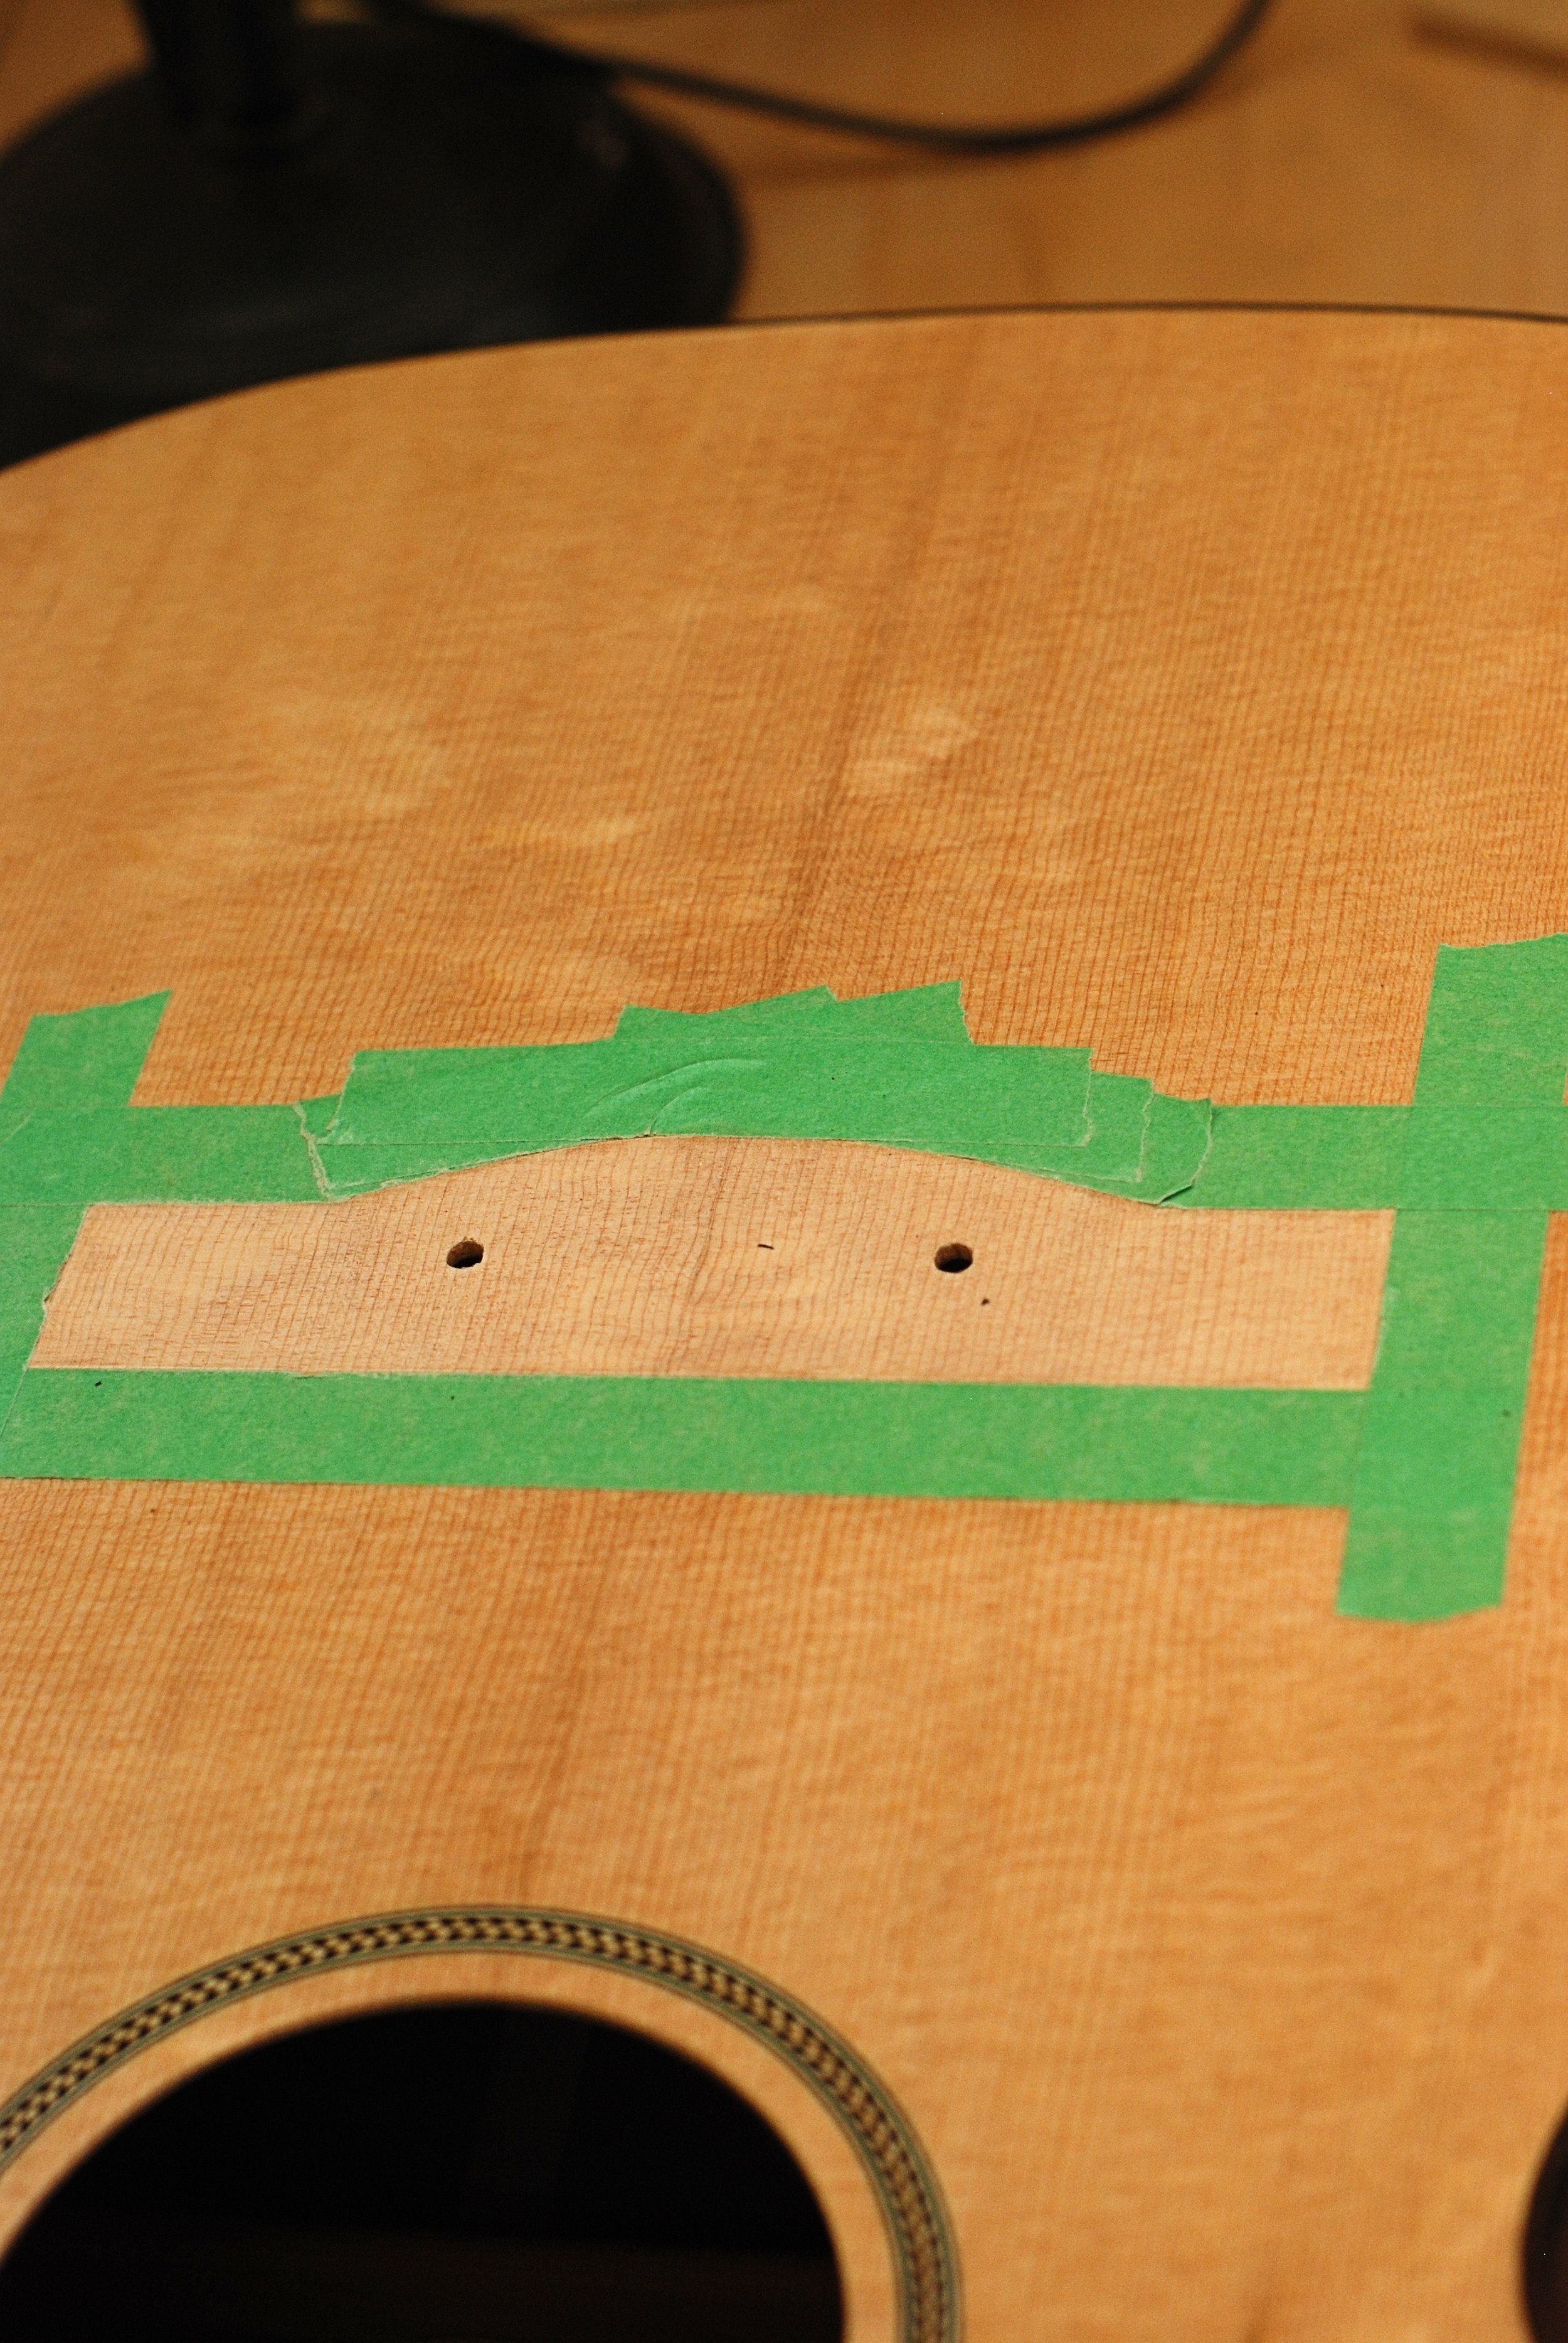 soundboard masked and bolt holes drilled prior to clamping.JPG